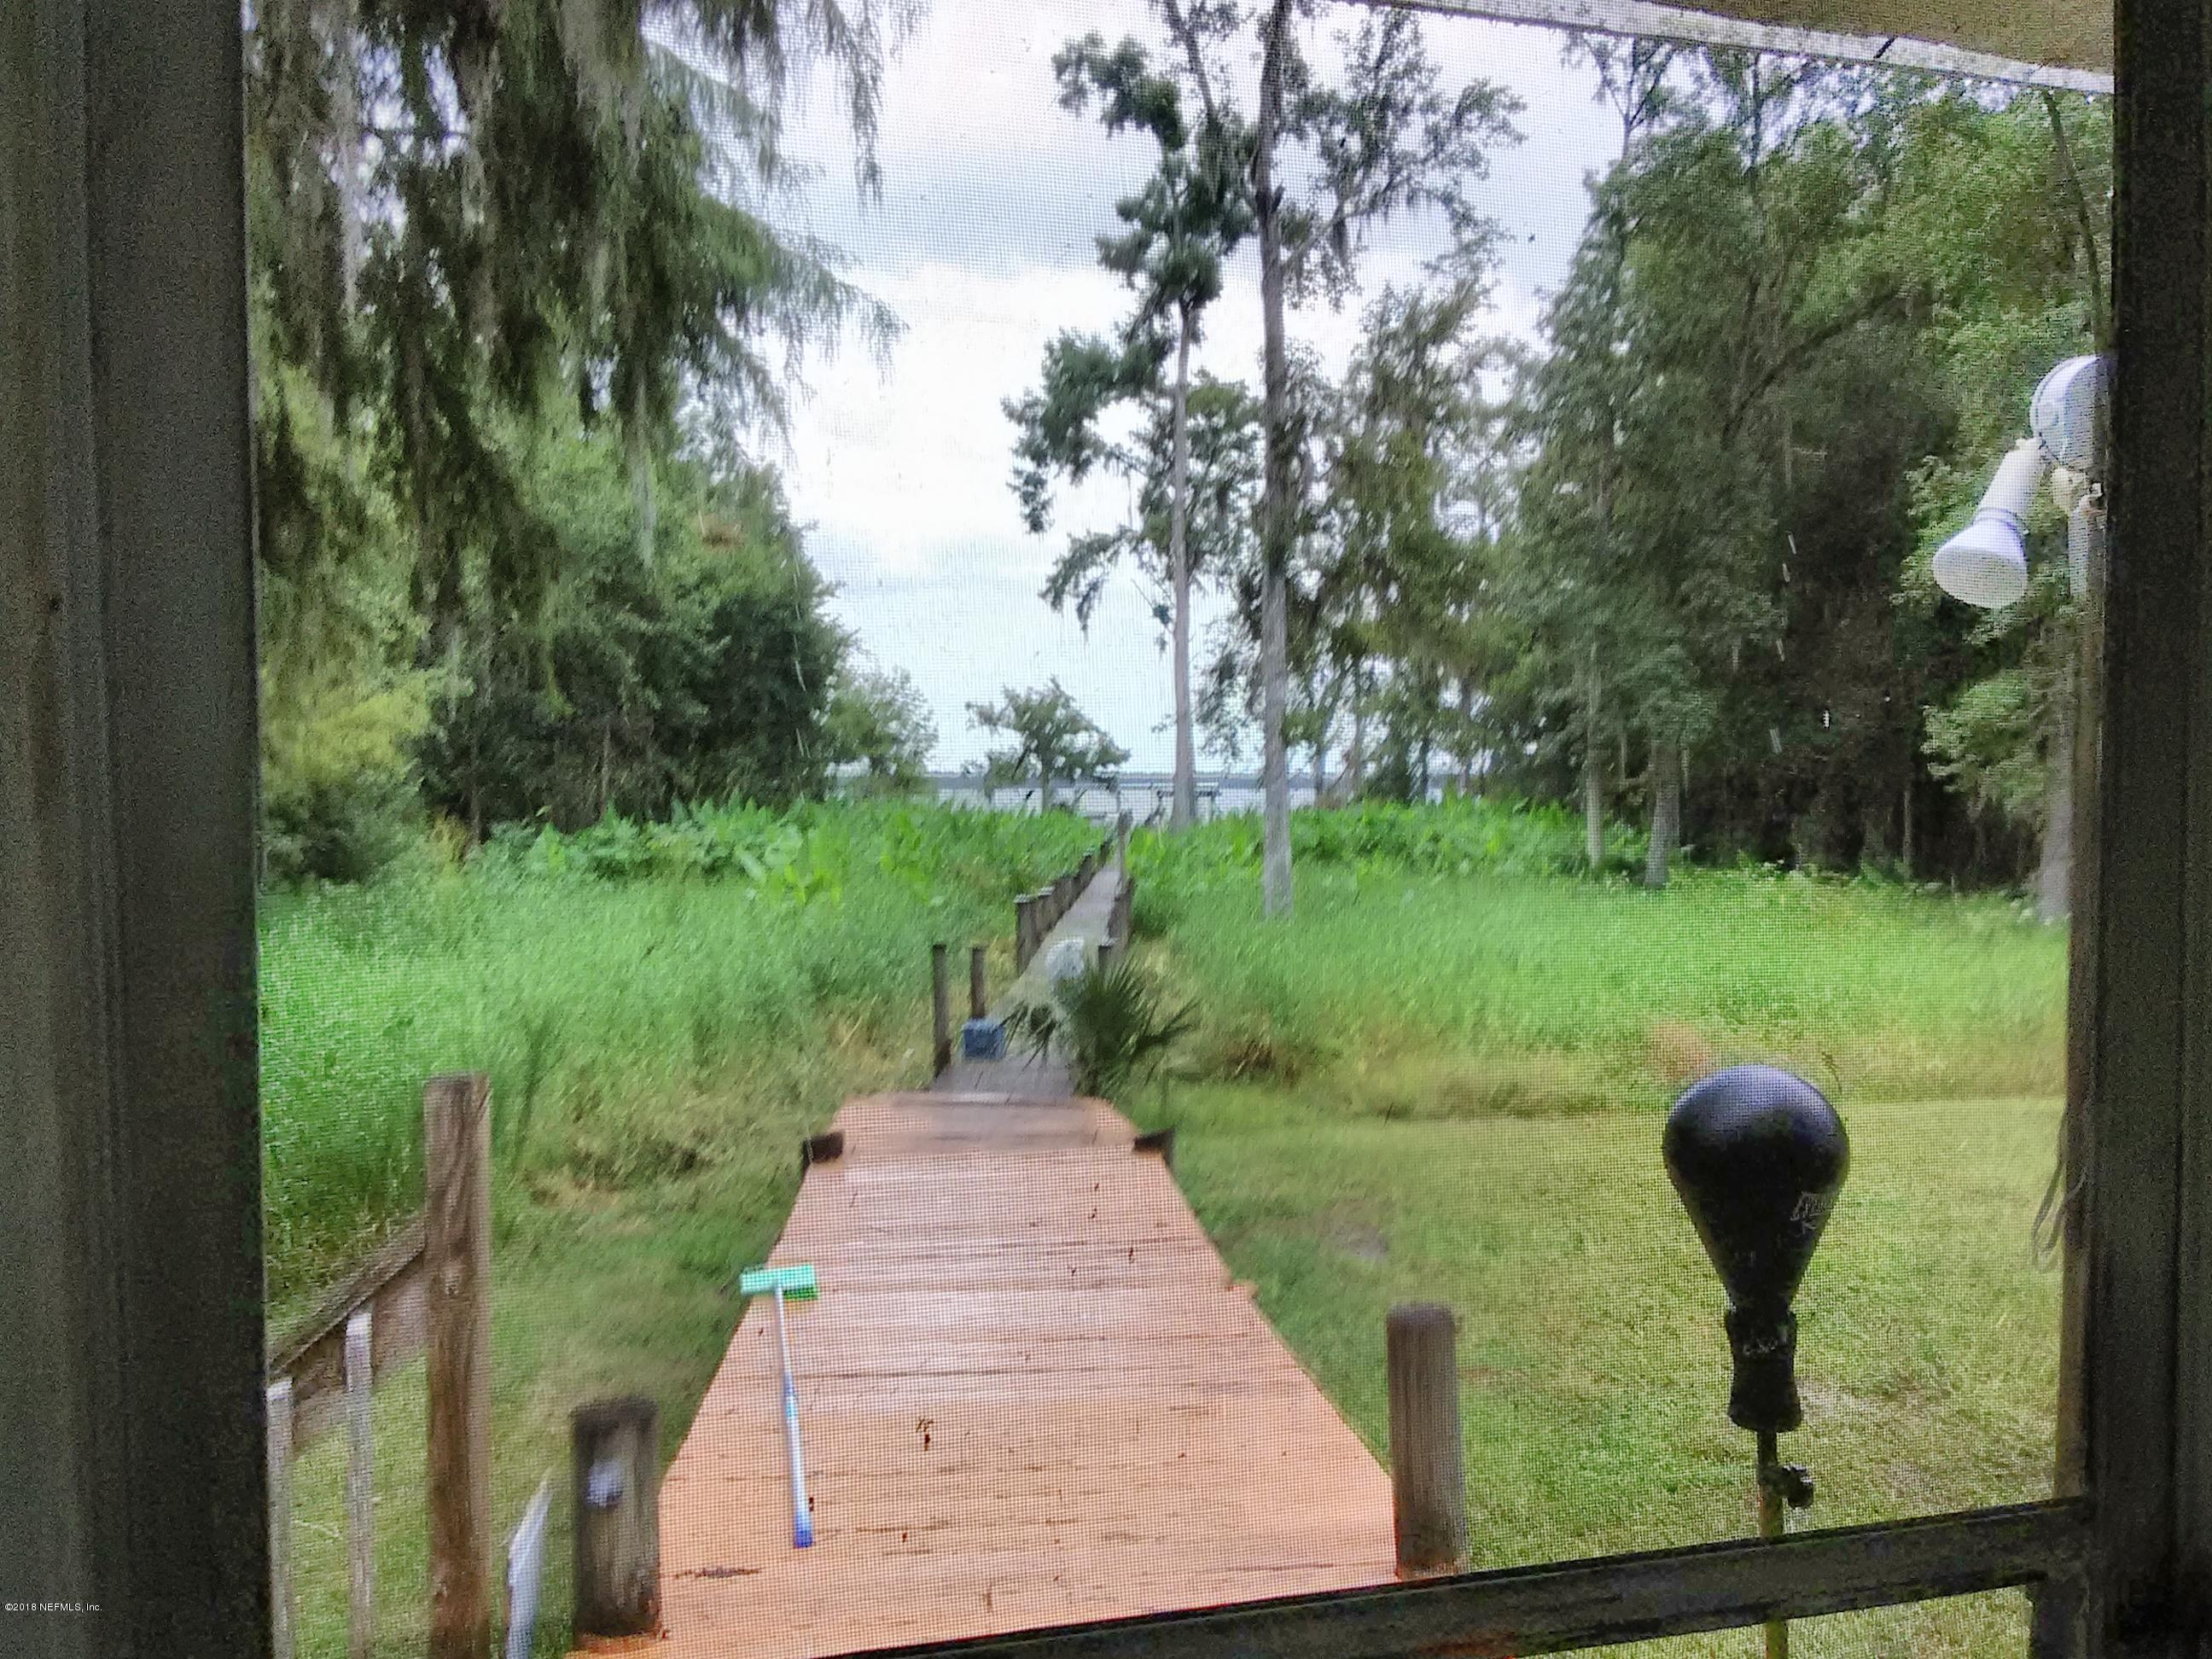 574 CLIFTON, CRESCENT CITY, FLORIDA 32112, 3 Bedrooms Bedrooms, ,2 BathroomsBathrooms,Residential - single family,For sale,CLIFTON,948890